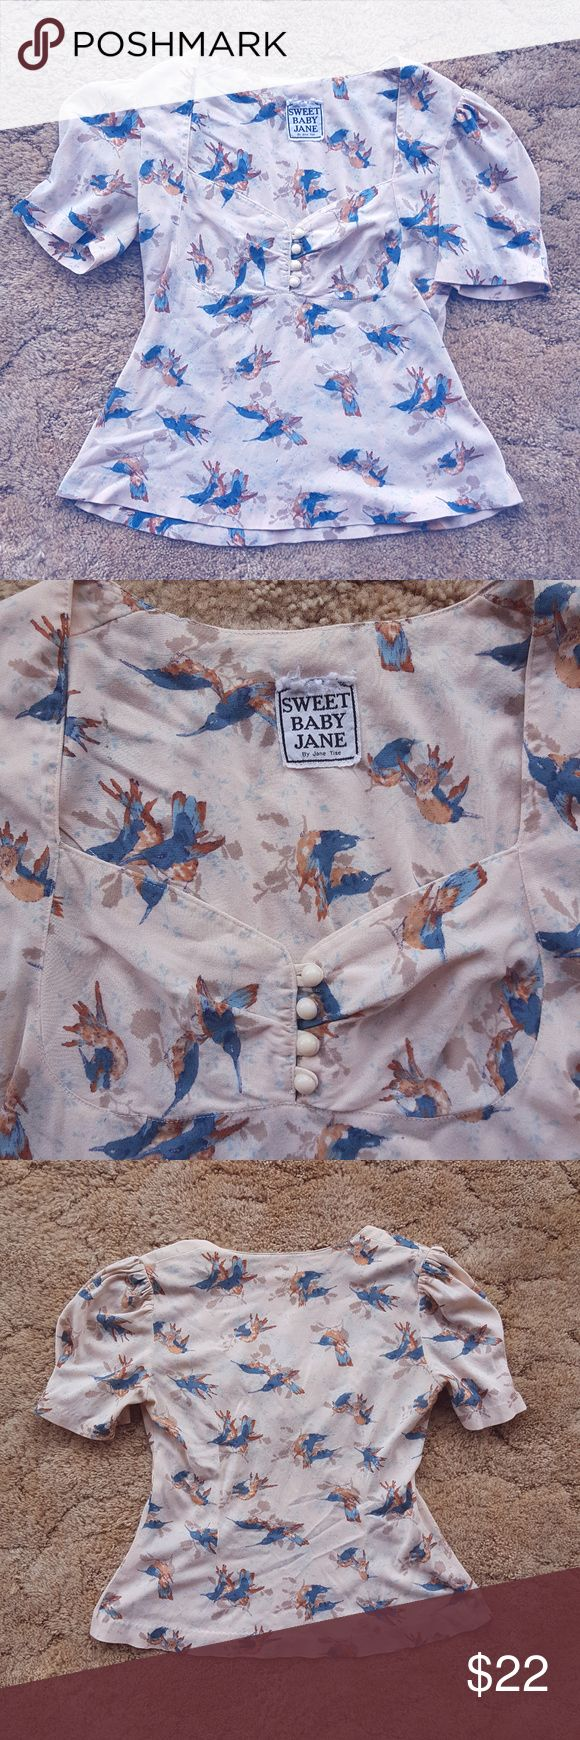 Vintage Sweet Baby Jane Vintage. This item has been well loved. Some small holes throughout material (moths). Size S. Flattering fit and beautiful bird print on cream colored background. Sweet Baby Jane Tops